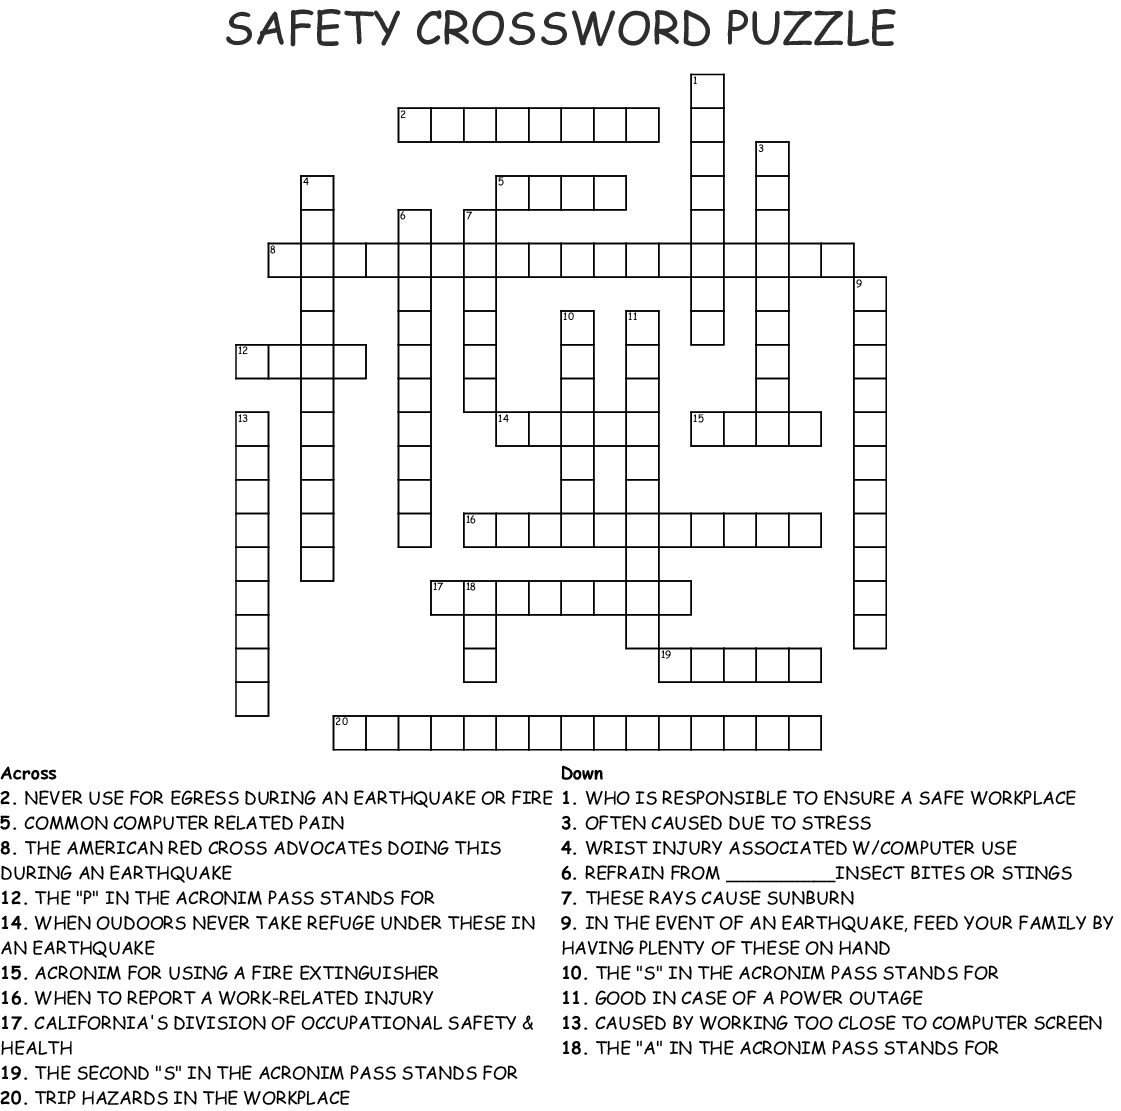 Safety Crossword Puzzle Crossword Wordmint